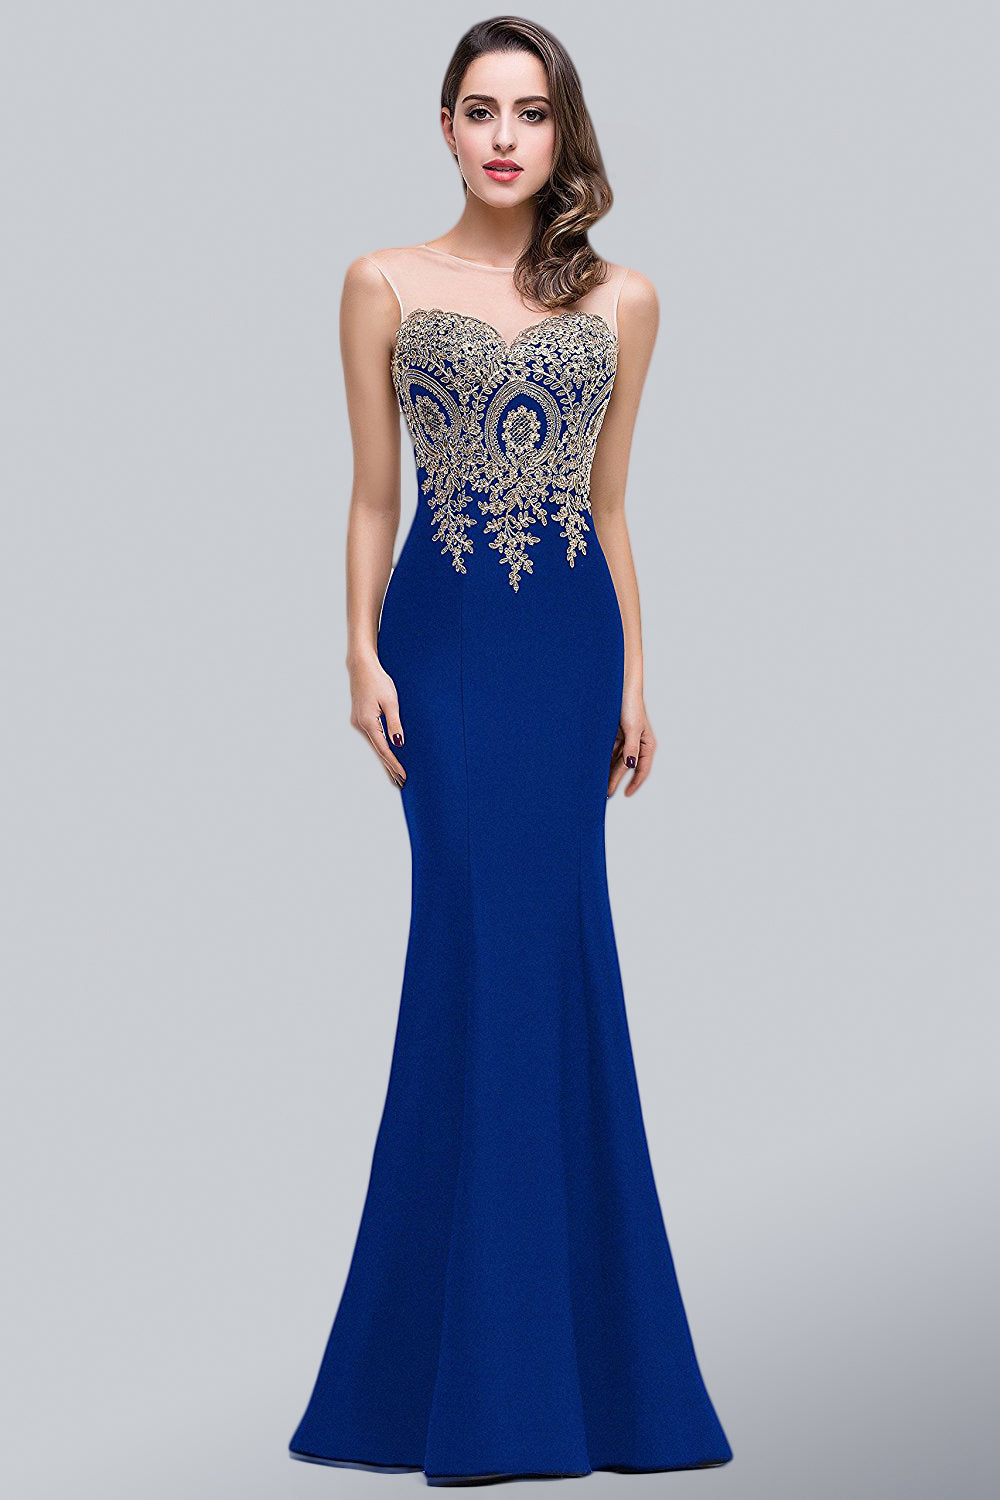 Trumpet/Mermaid Sleeveless Lace Applique Evening Dresses